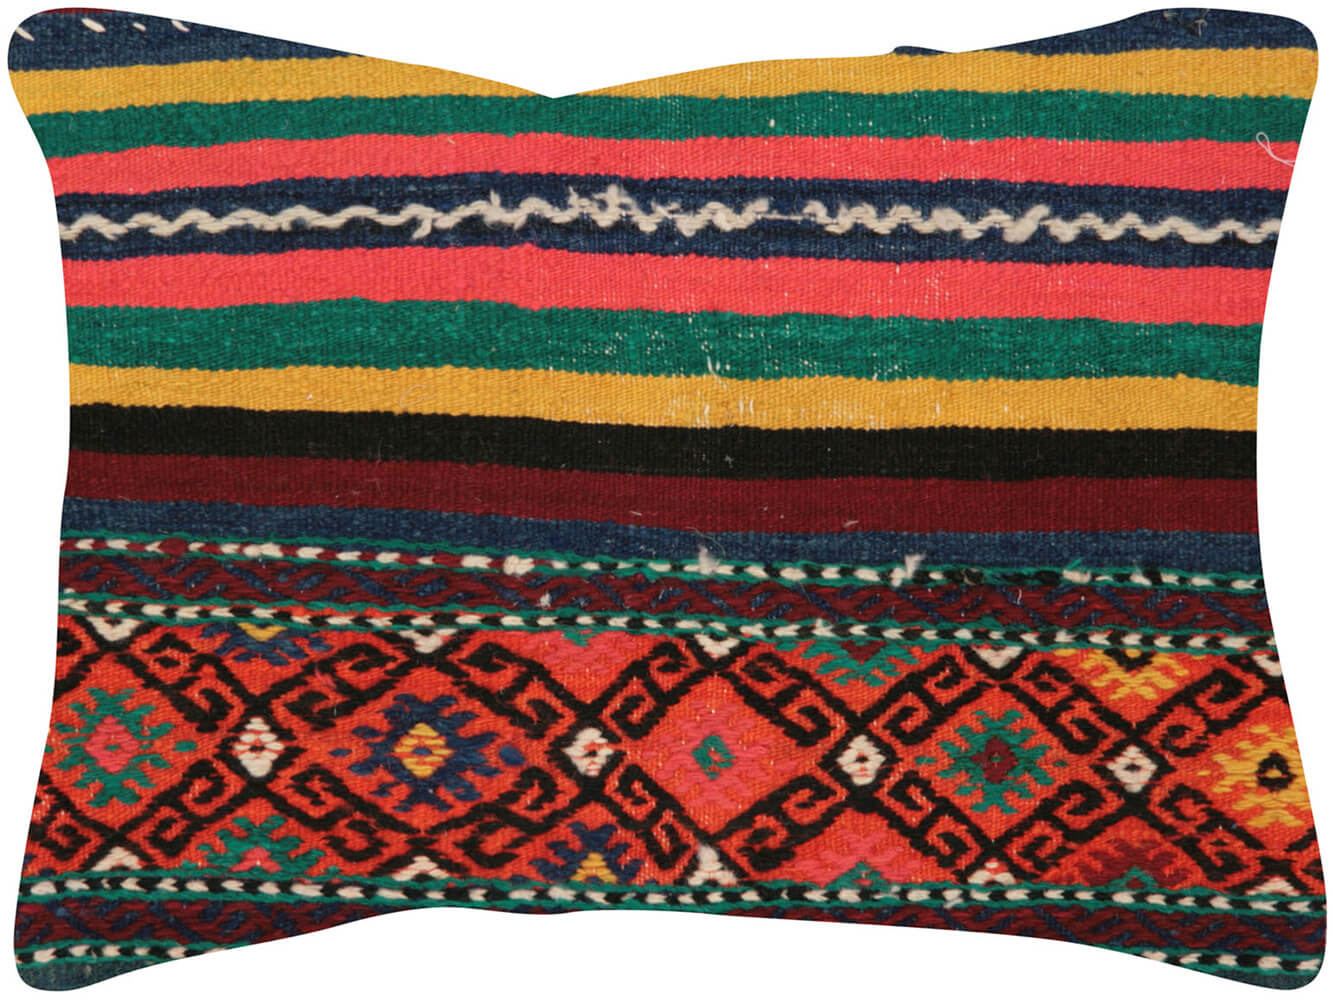 "Vintage Turkish Jijim Pillow - 17"" x 24"""